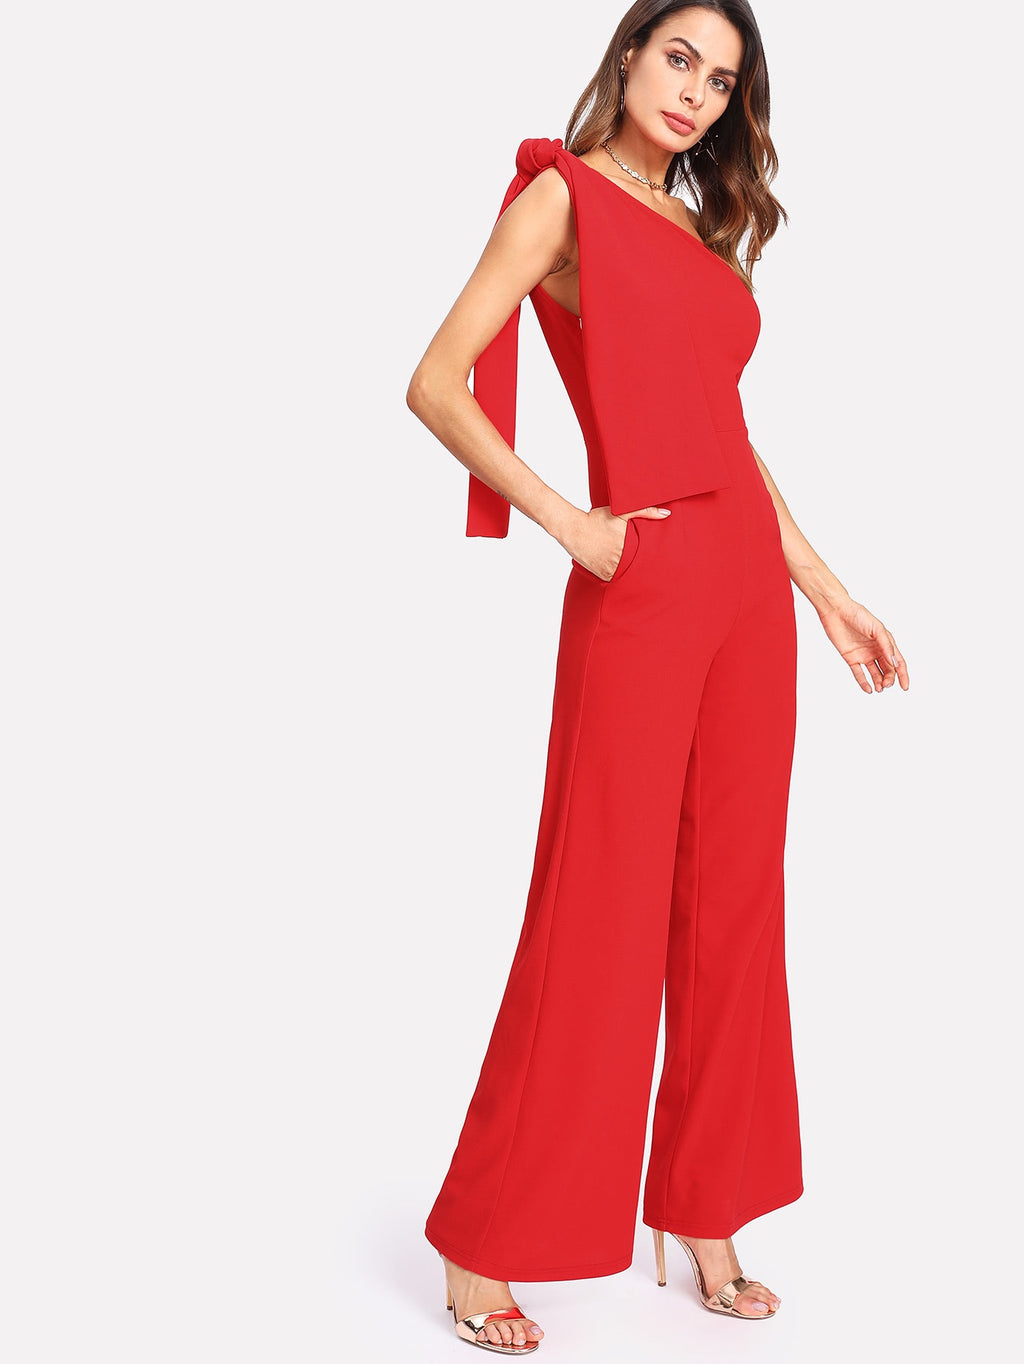 Lana red jumpsuit